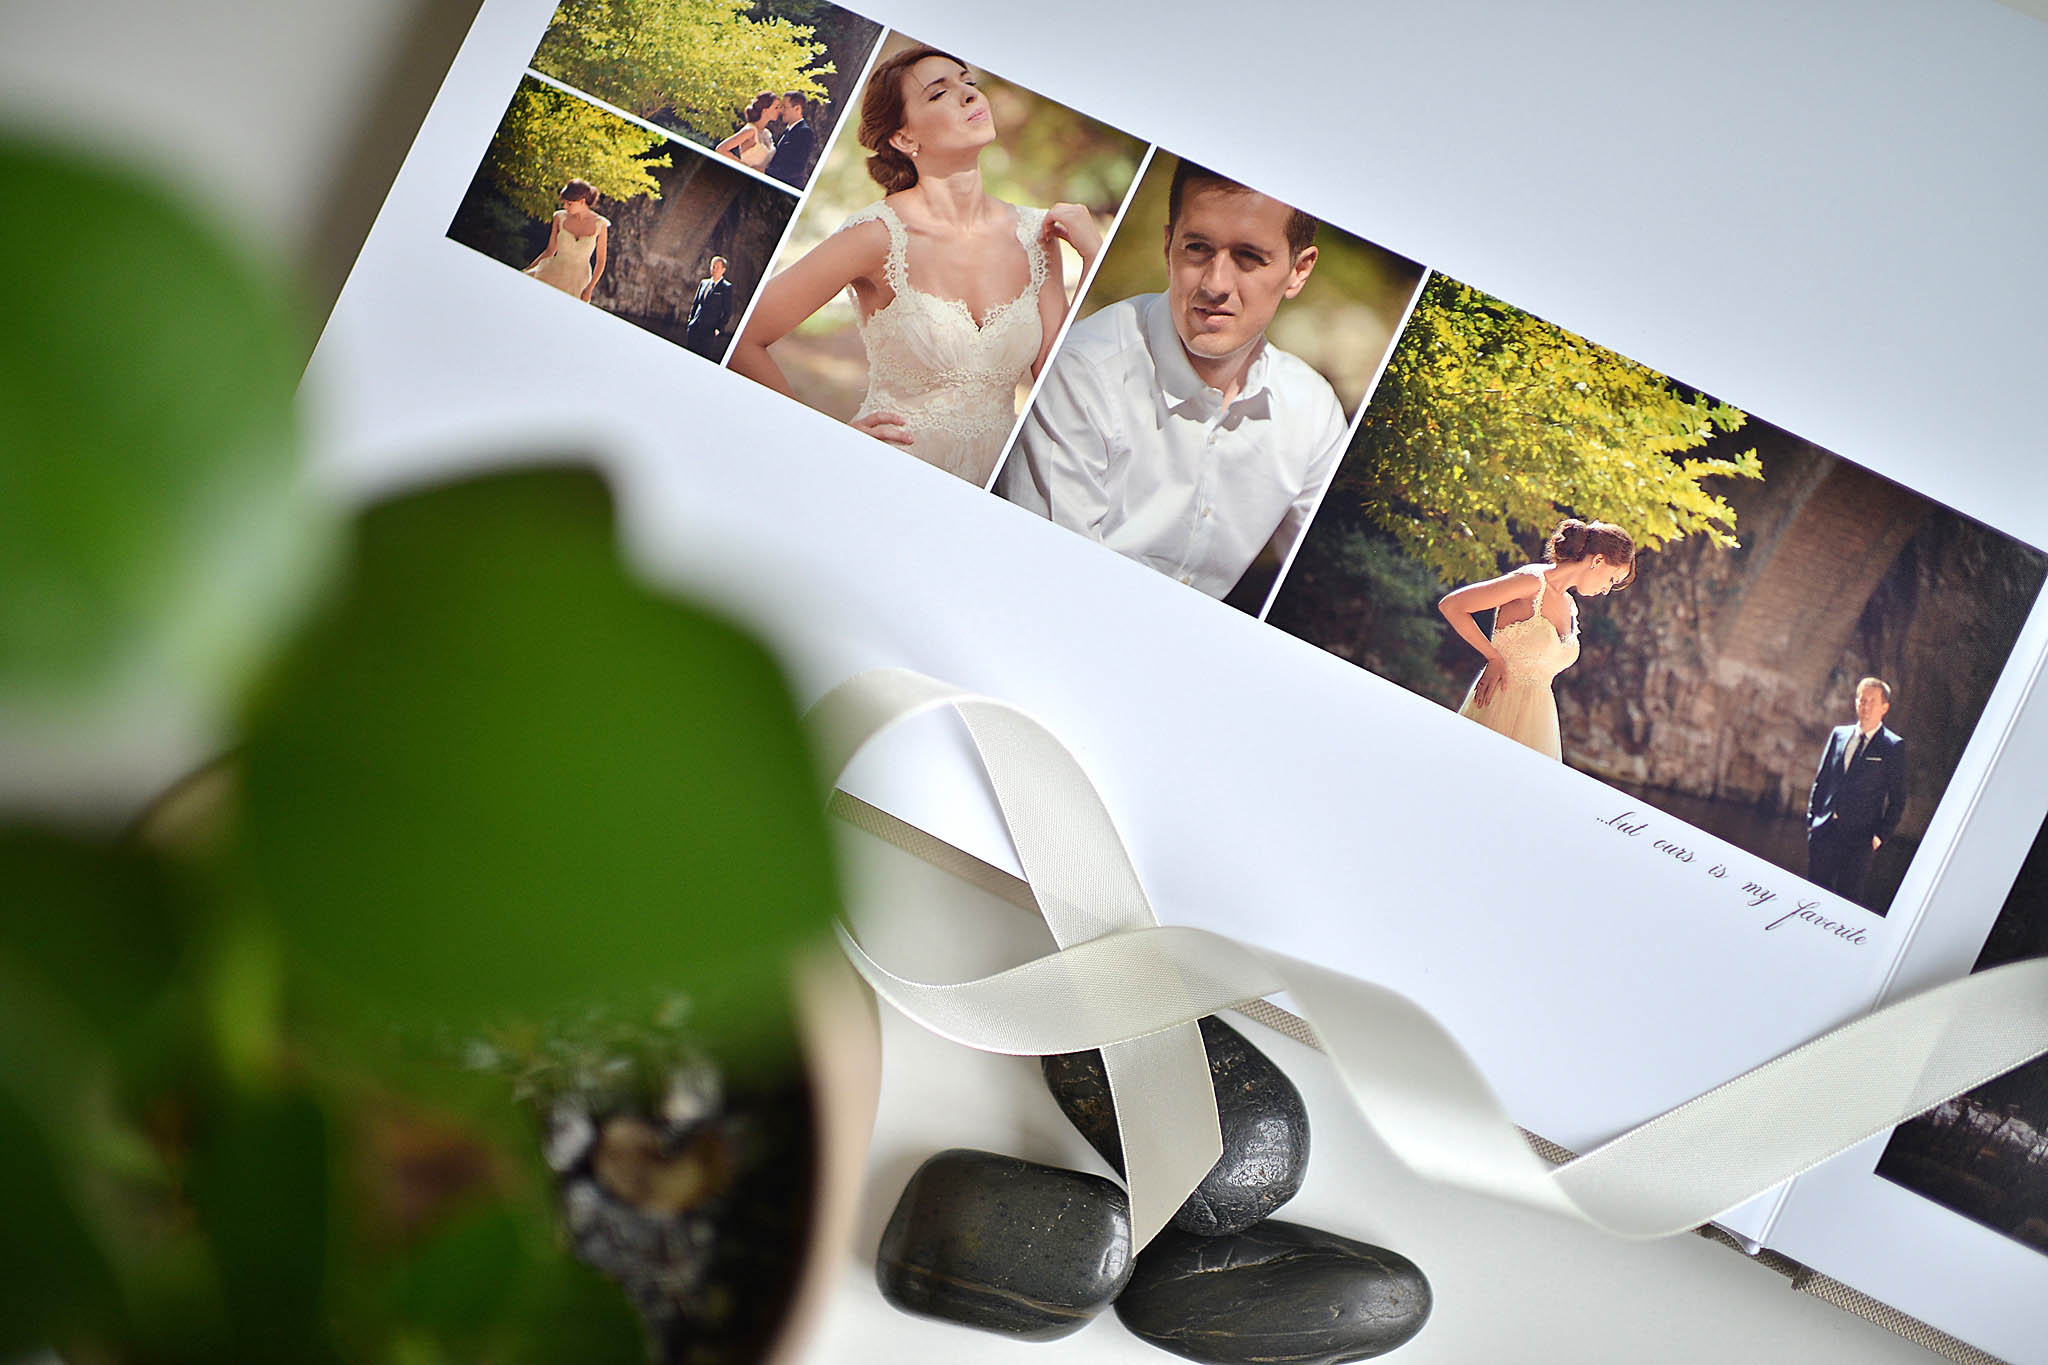 wedding photo album by Alexis Koumaditis photography